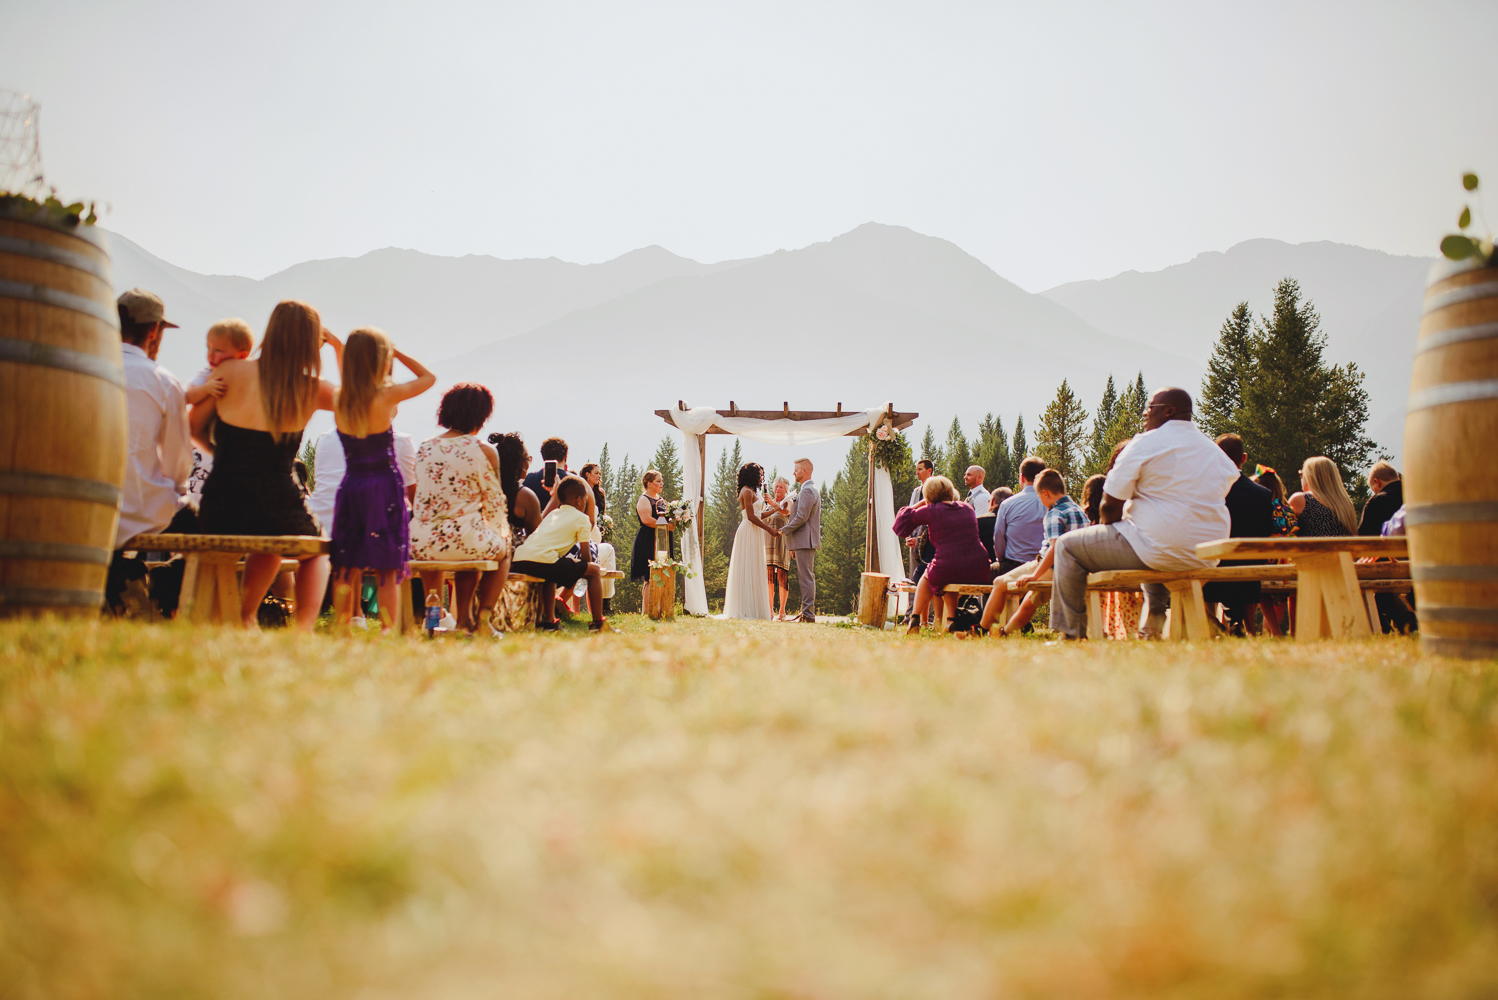 Kelowna-Wedding-Photographer-36.jpg